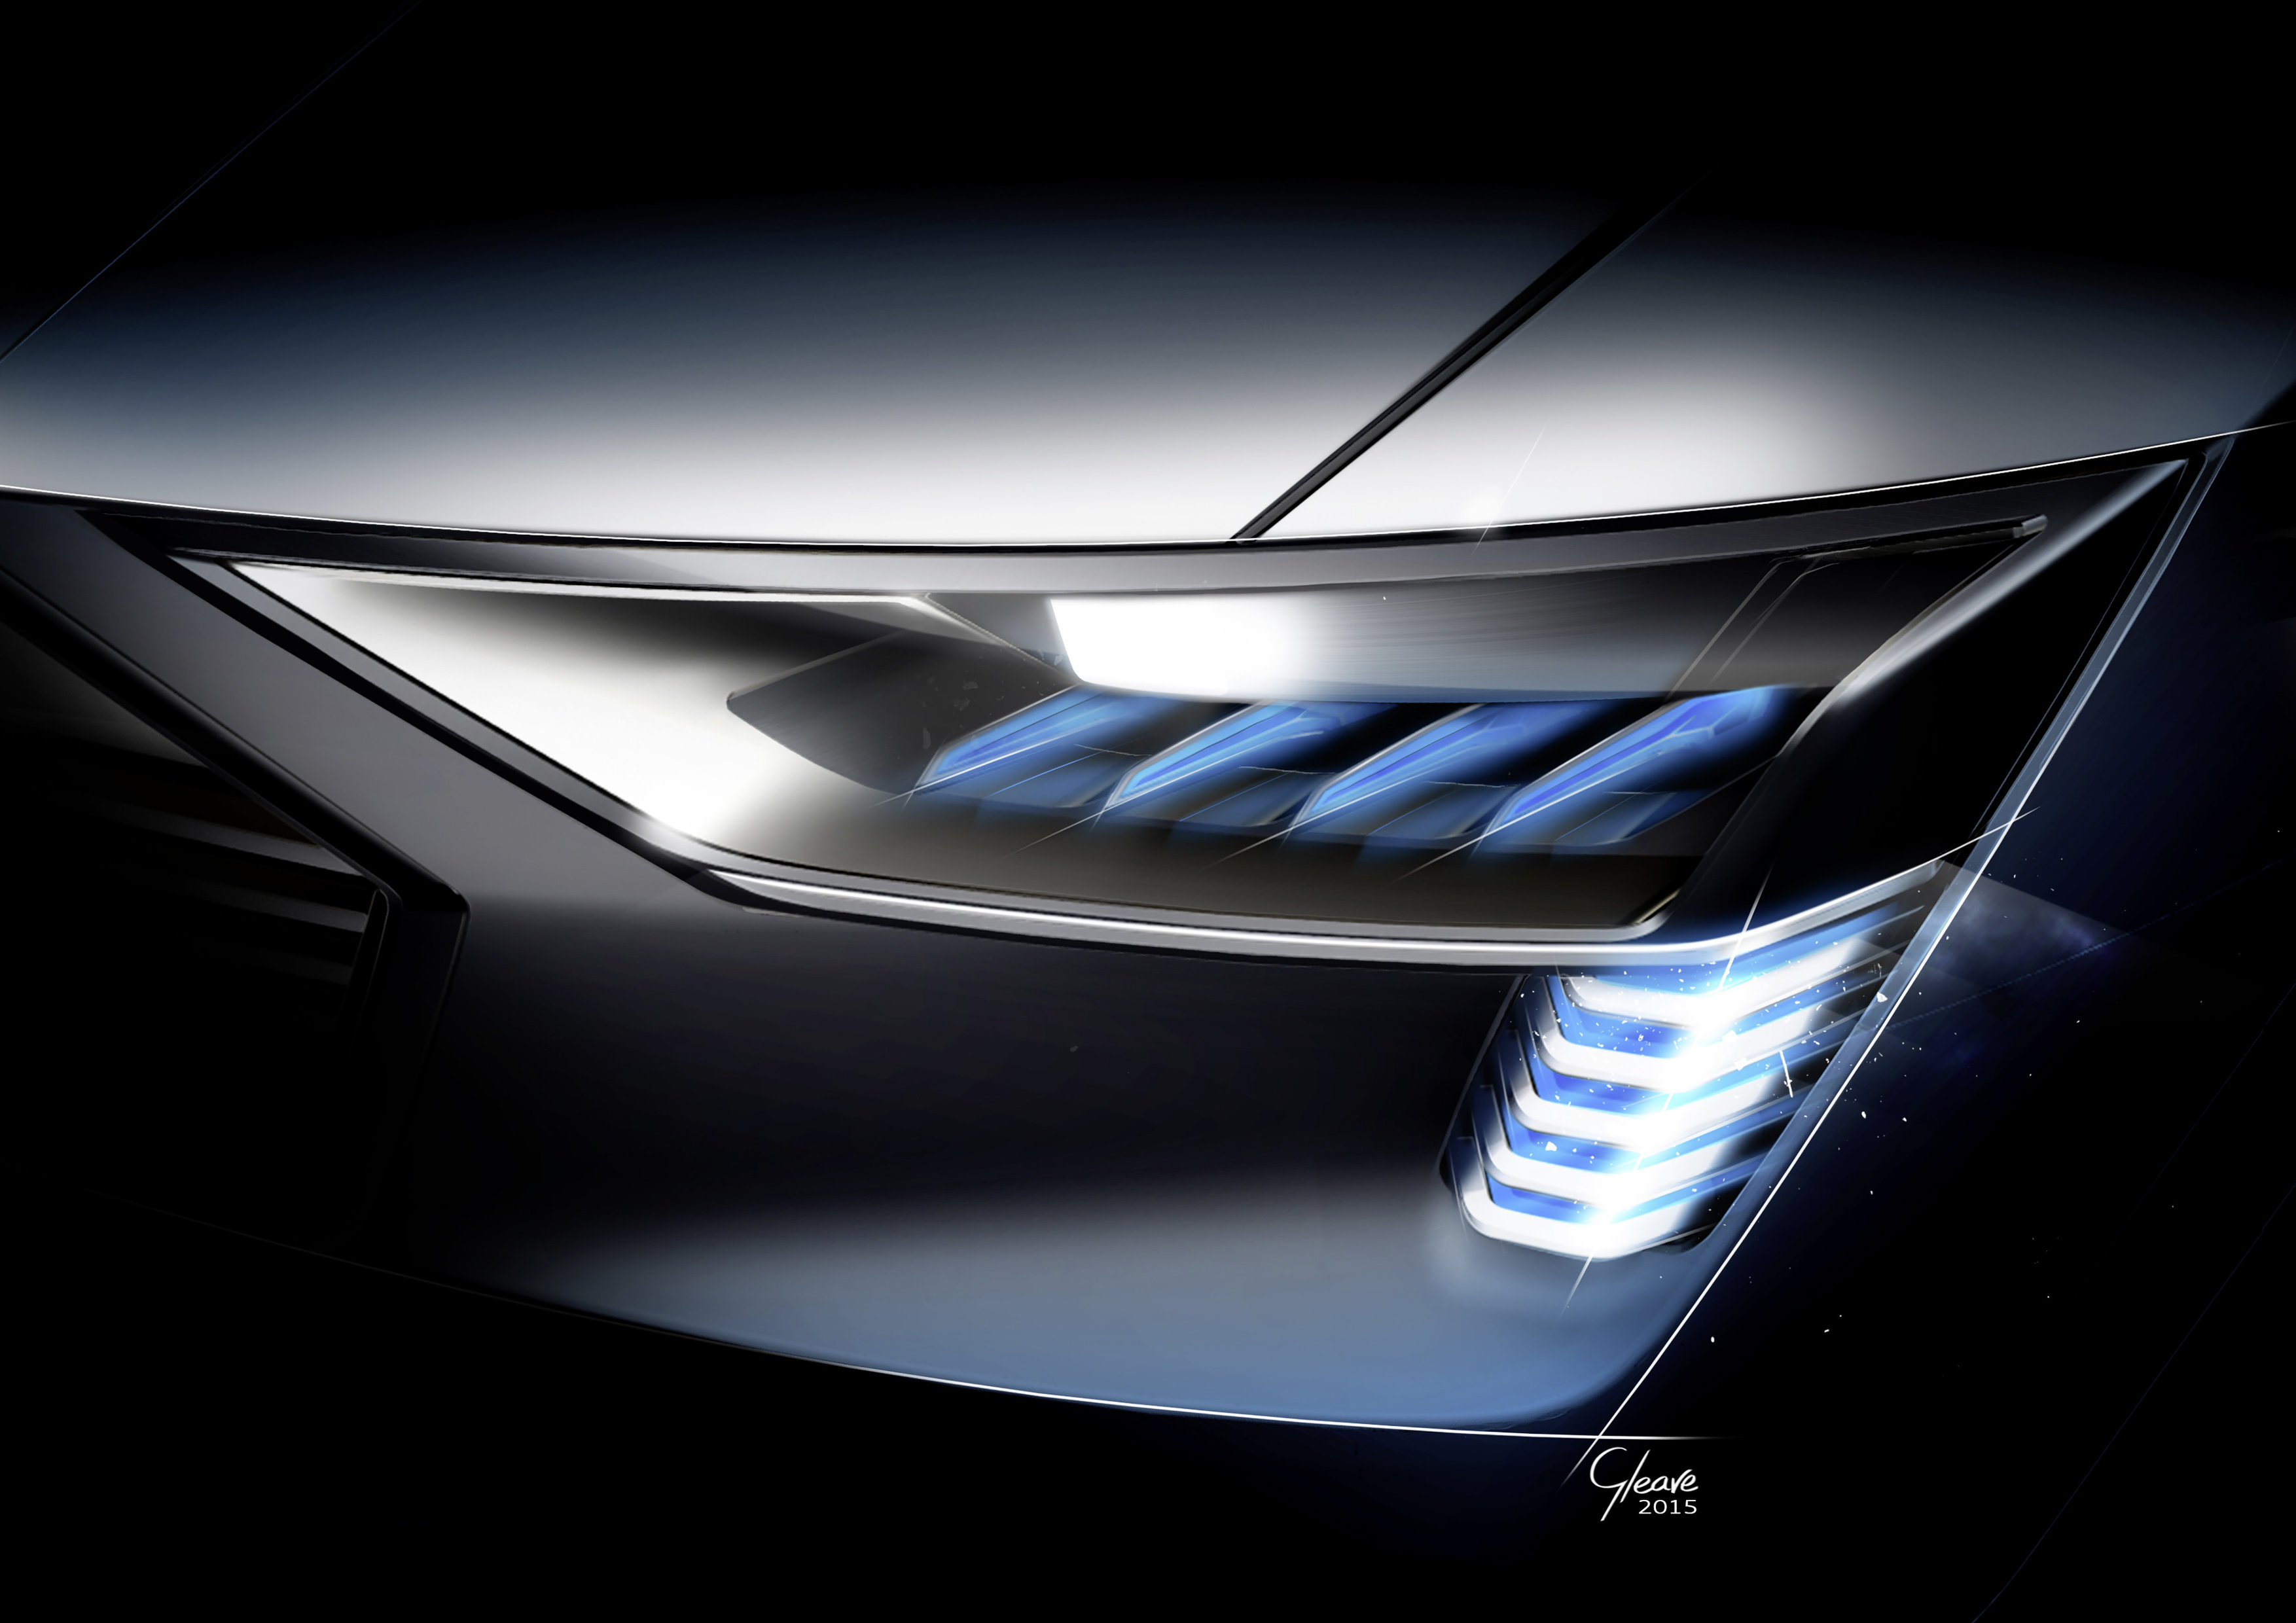 Audi e-tron quattro concept â?? Headlight with e-tron light sign